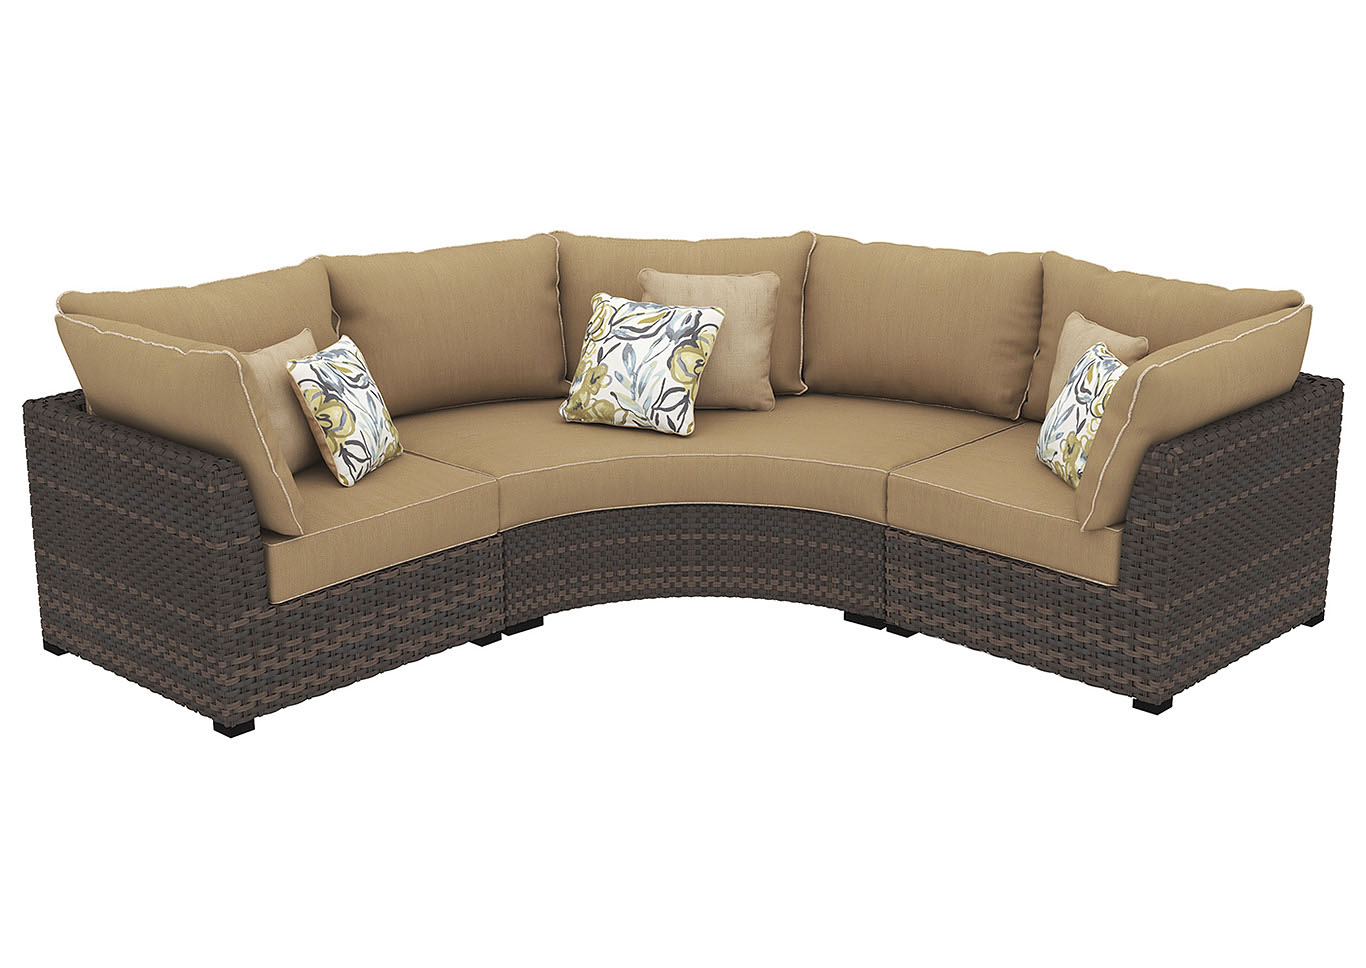 Oak Furniture Liquidators Spring Ridge Beige Brown Sectional